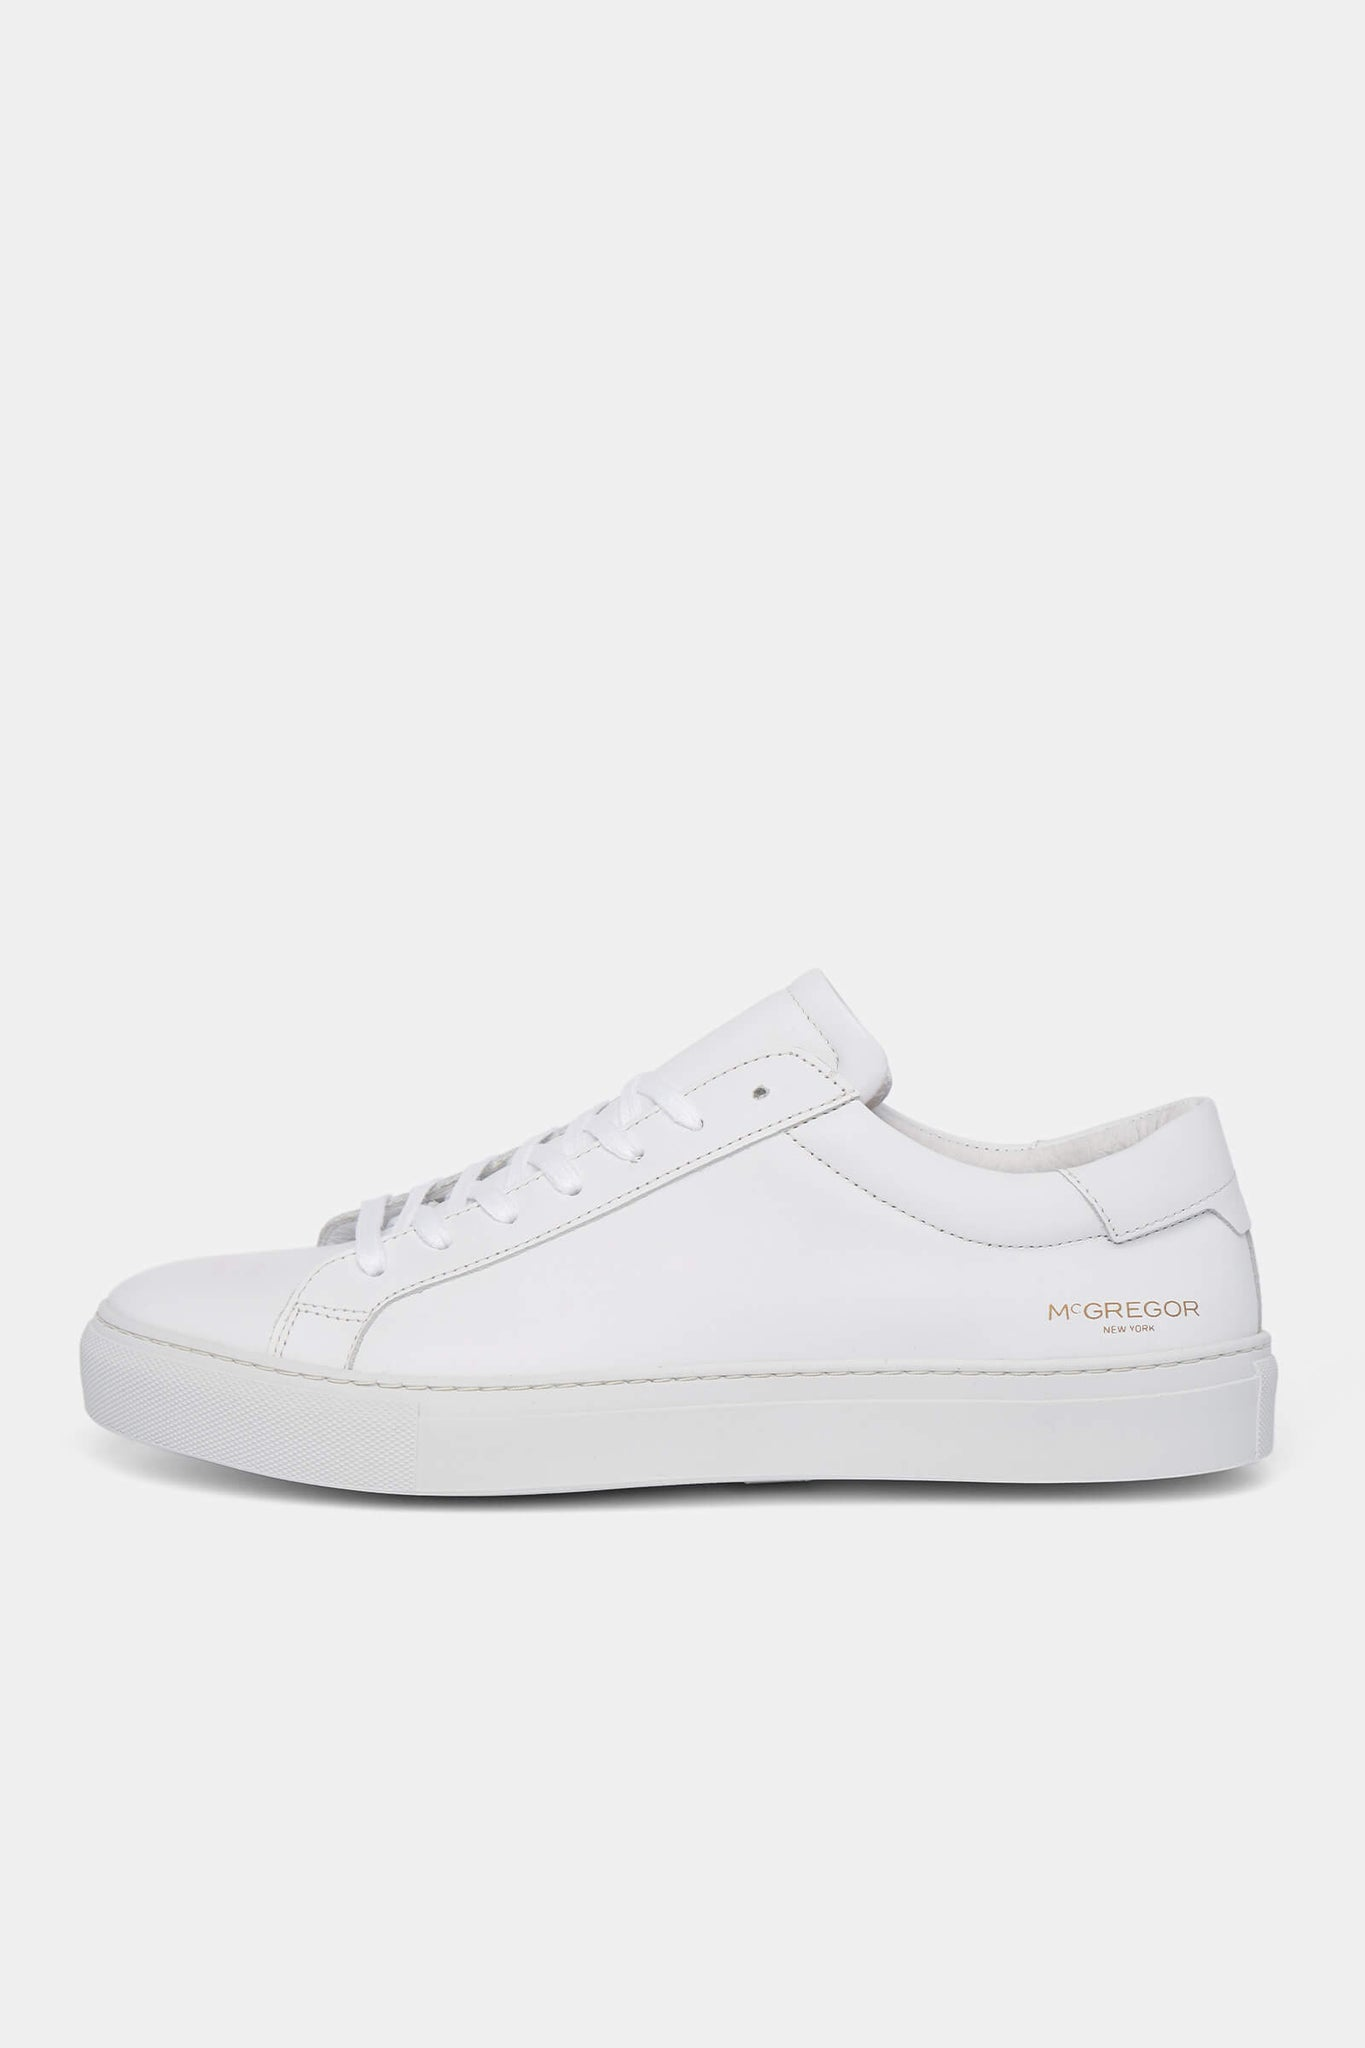 The McG White Leather Sneakers